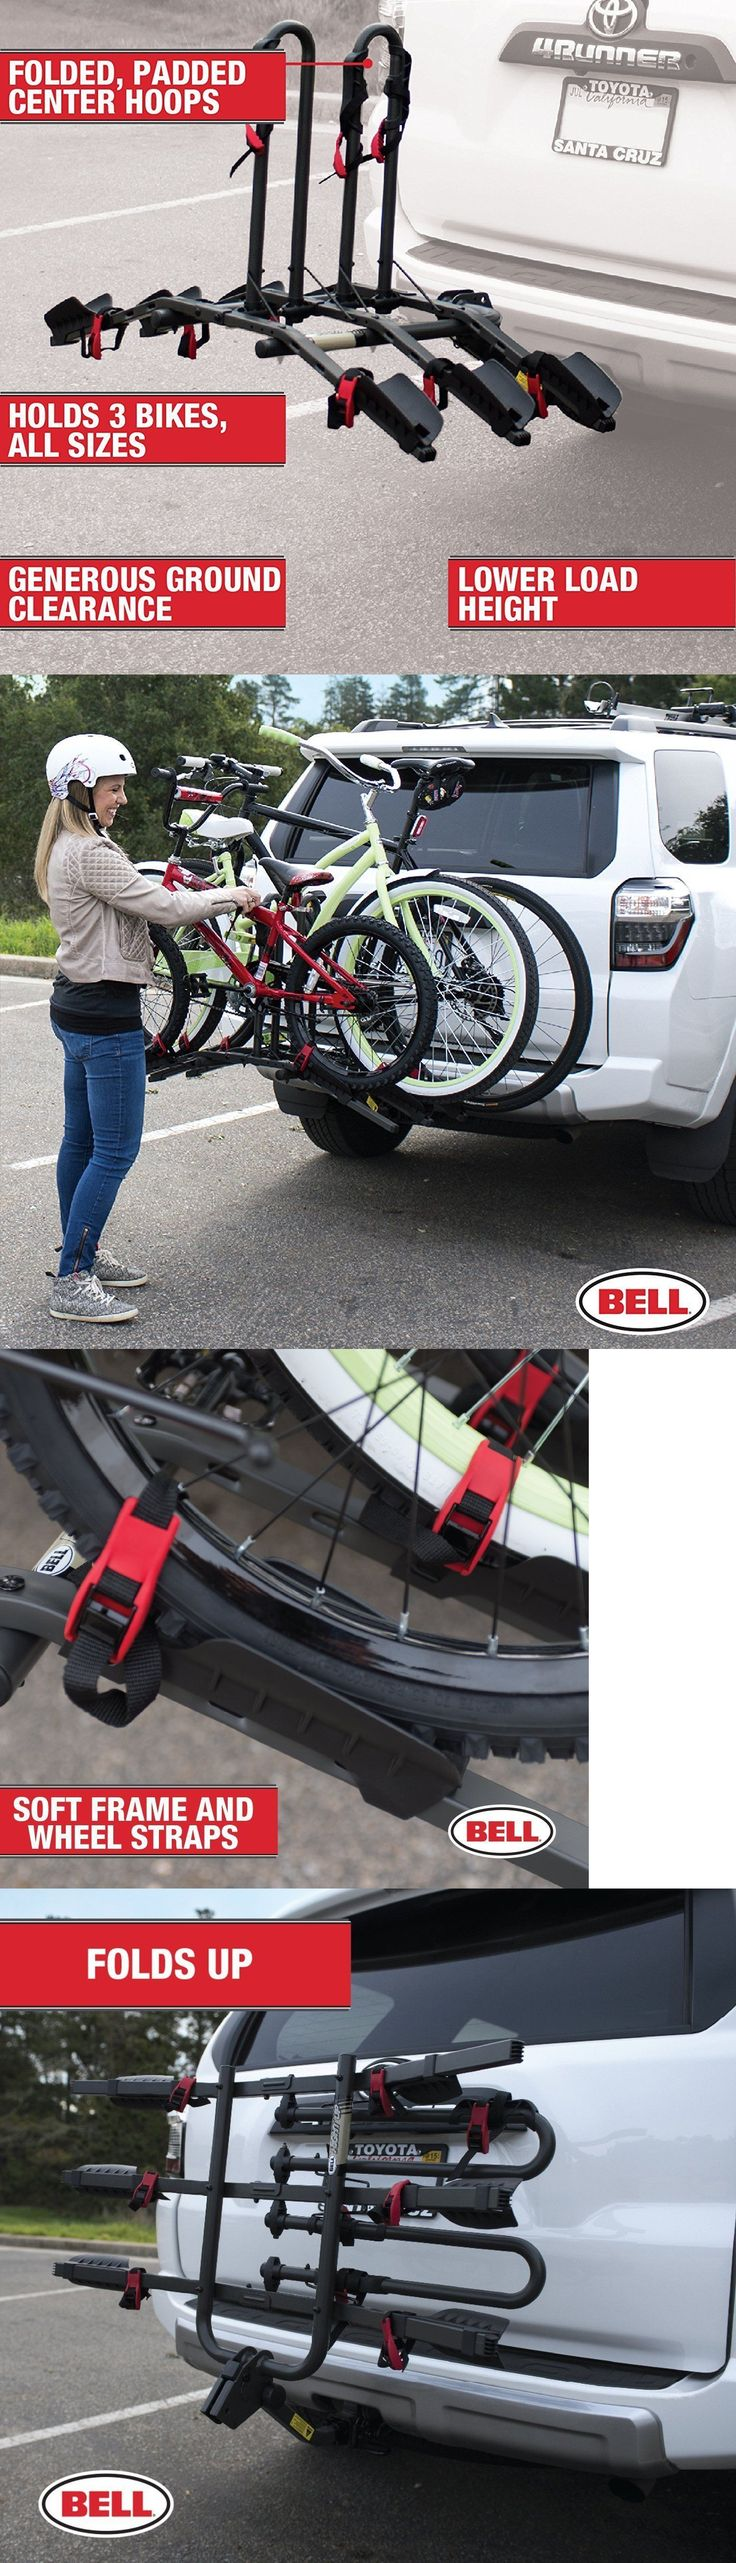 Car and Truck Racks 177849: Bell Right Up 300 3-Bike Hitch Rack Rightup New Sealed Box!! -> BUY IT NOW ONLY: $139.5 on eBay!